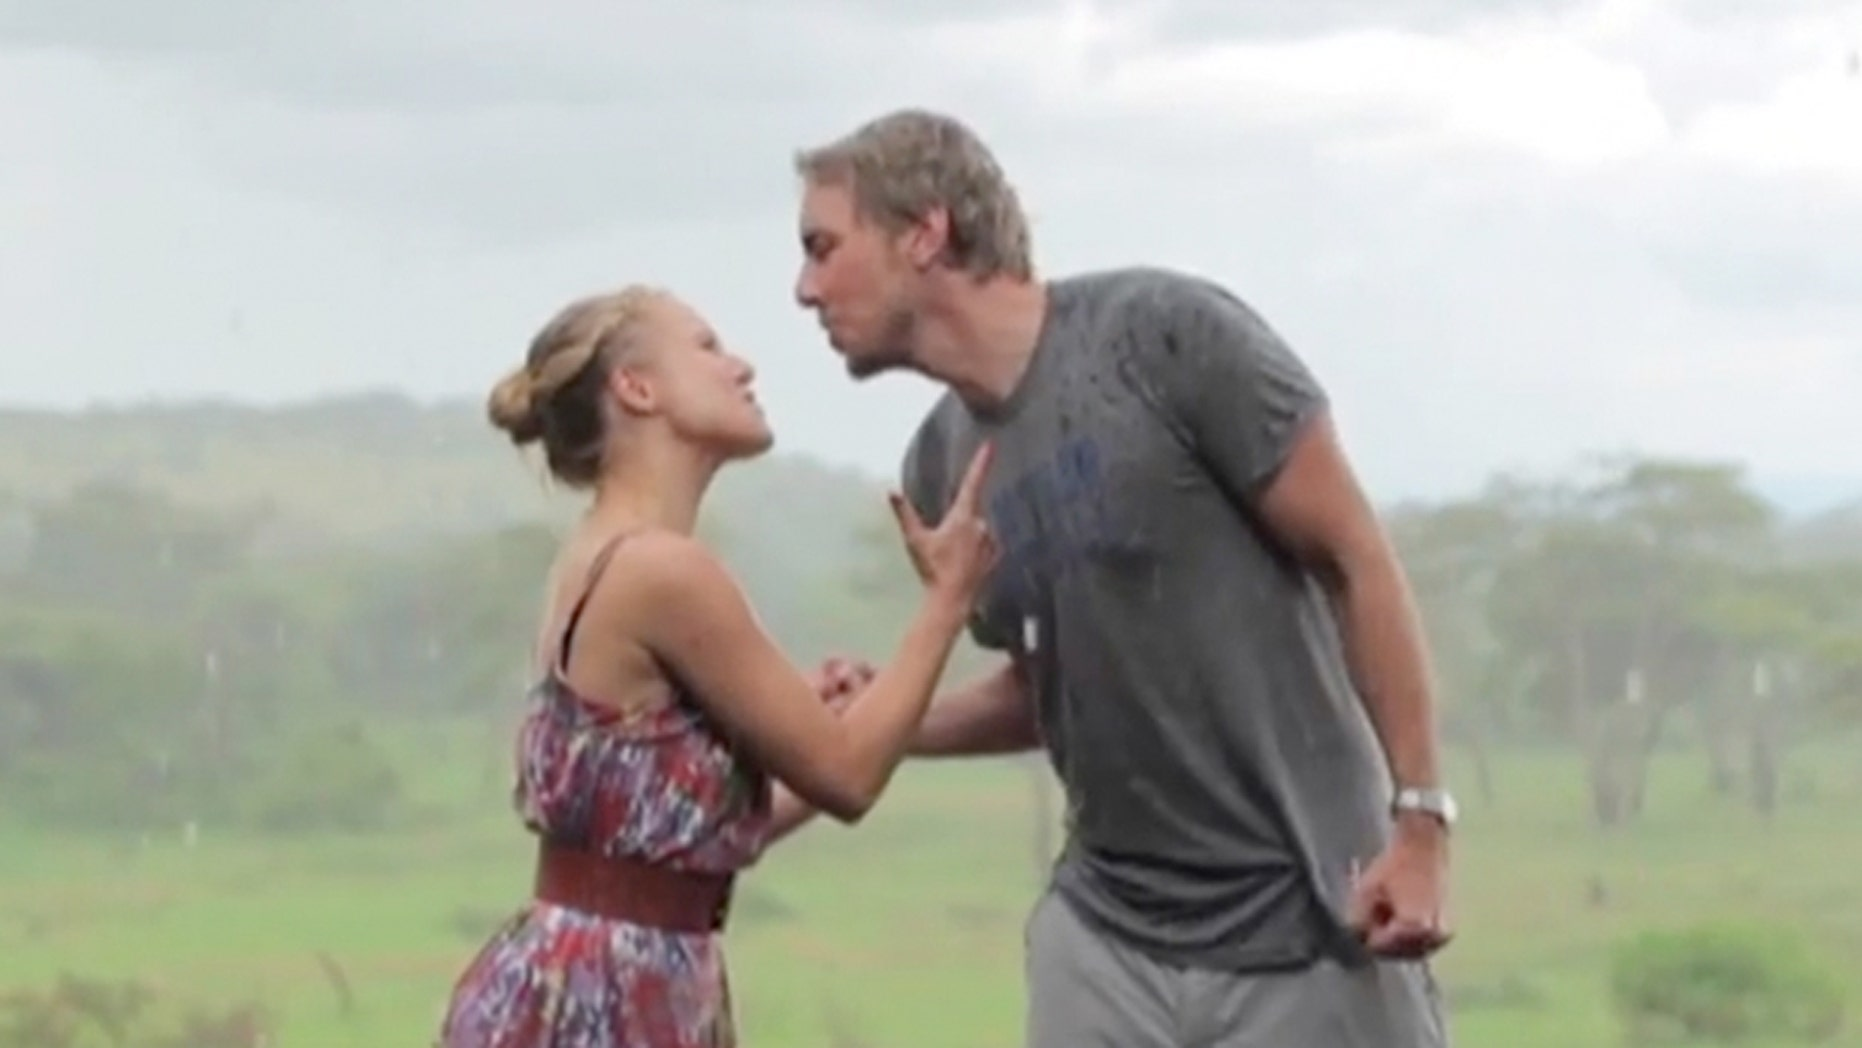 Kristen Bell and Dax Shepard channel Toto to honor the last trip pre-kids.